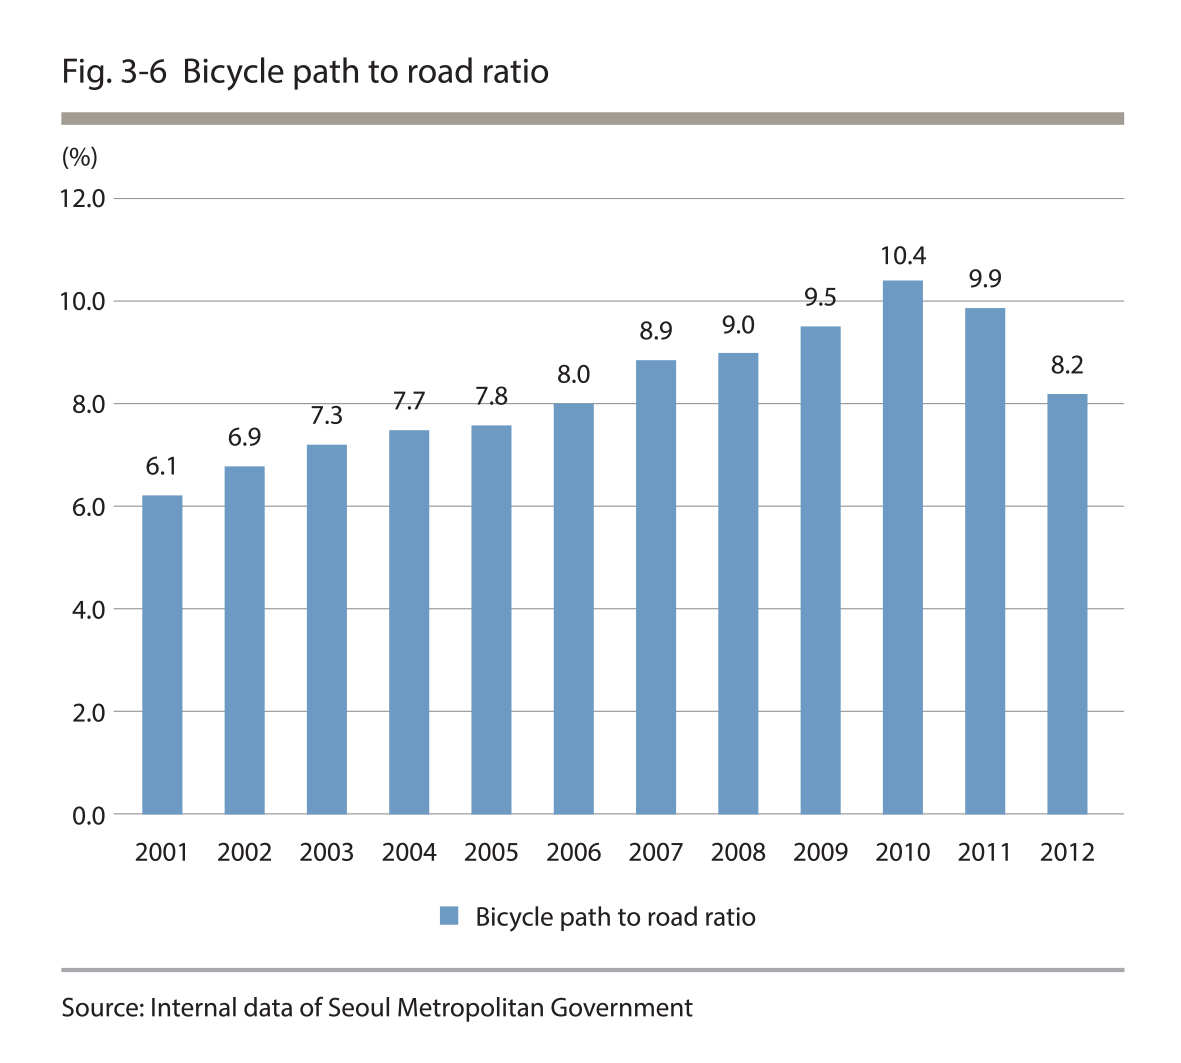 Bicycle path to road ratio